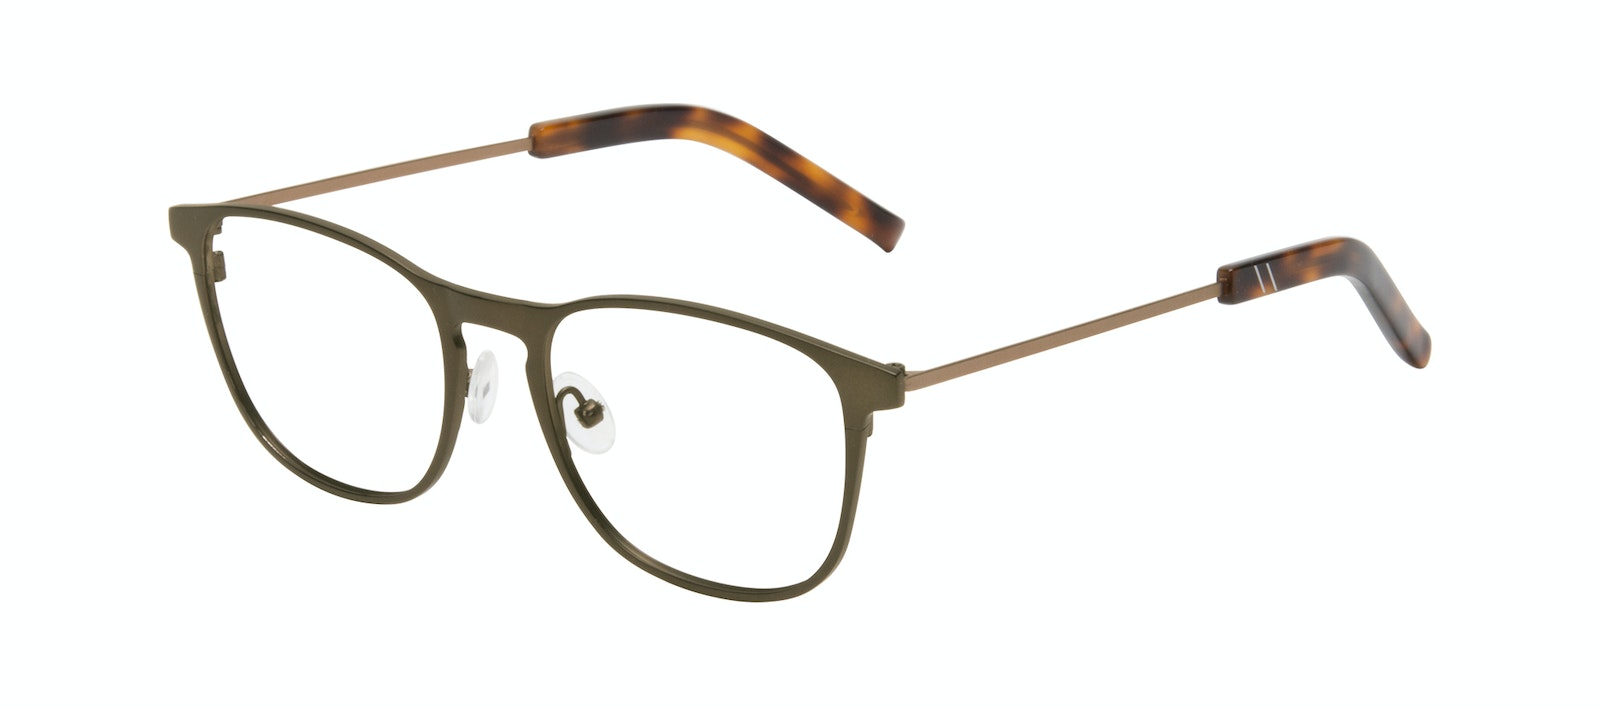 Affordable Fashion Glasses Square Eyeglasses Men Elevate Khaki Tilt